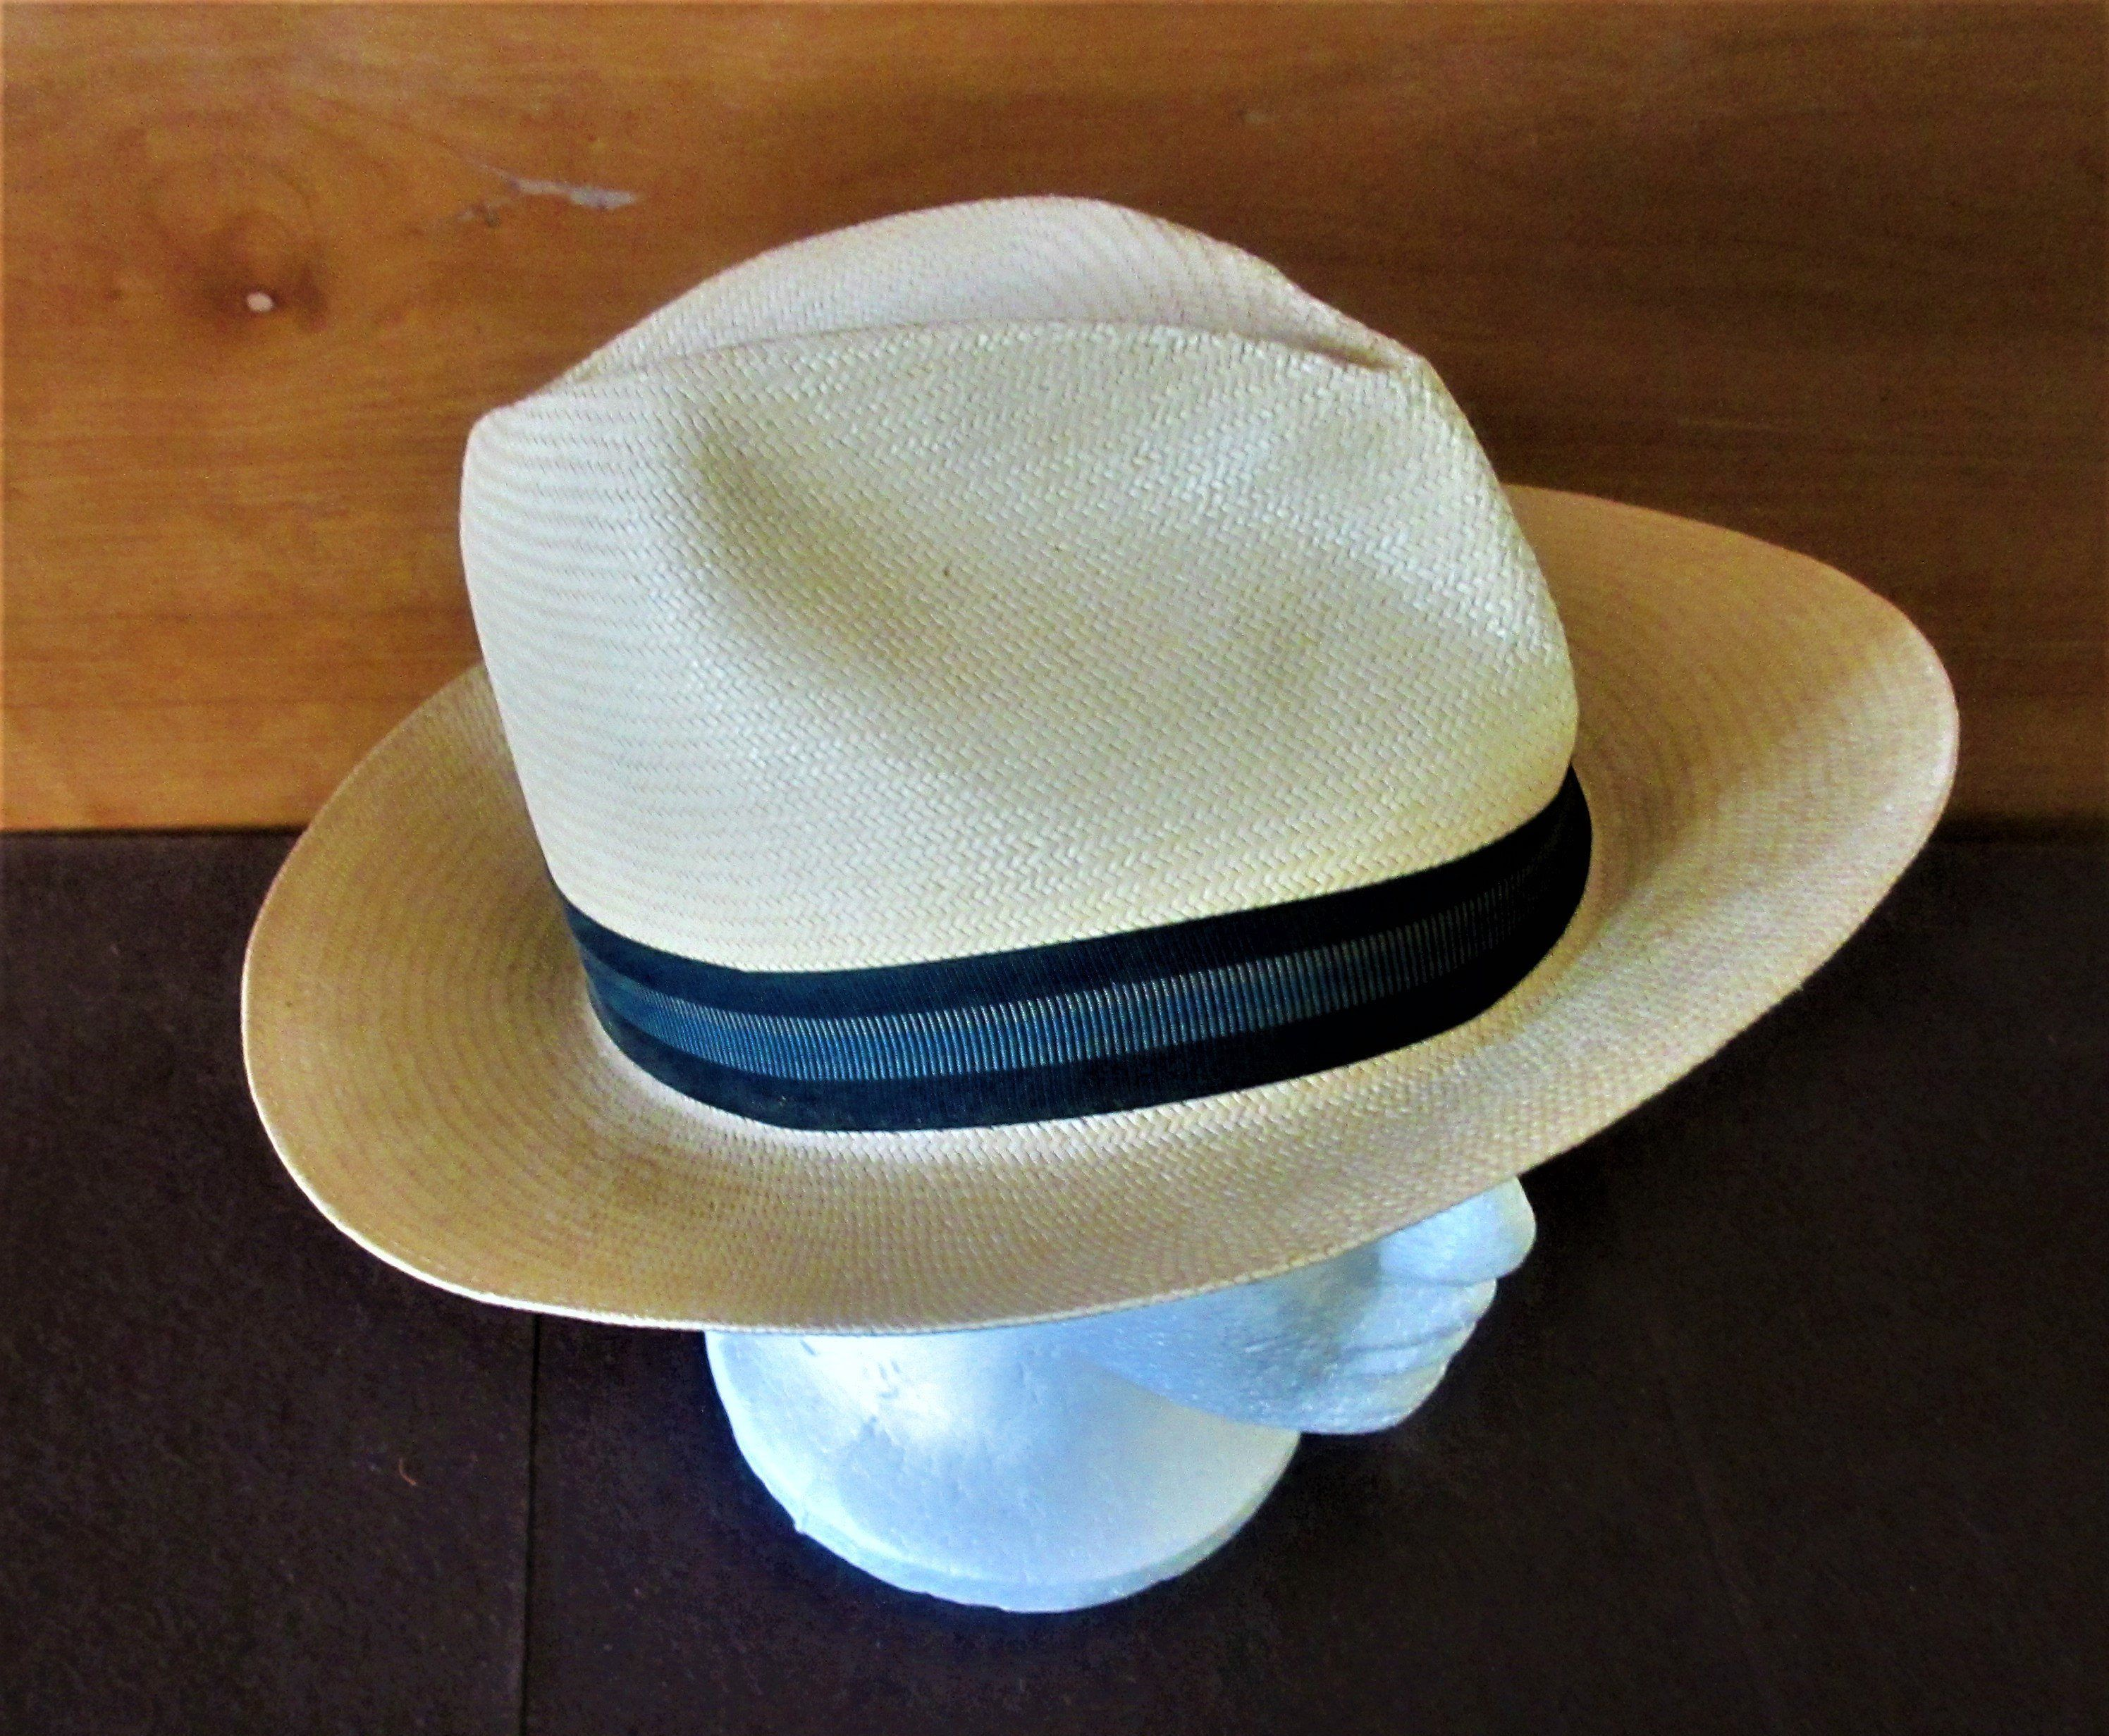 615c83c29be15 Stetson Hat Fedora vintage Straw Men s 2 1 2 inch brim Size 7 1 8 by  BlueMoonVintageToo on Etsy